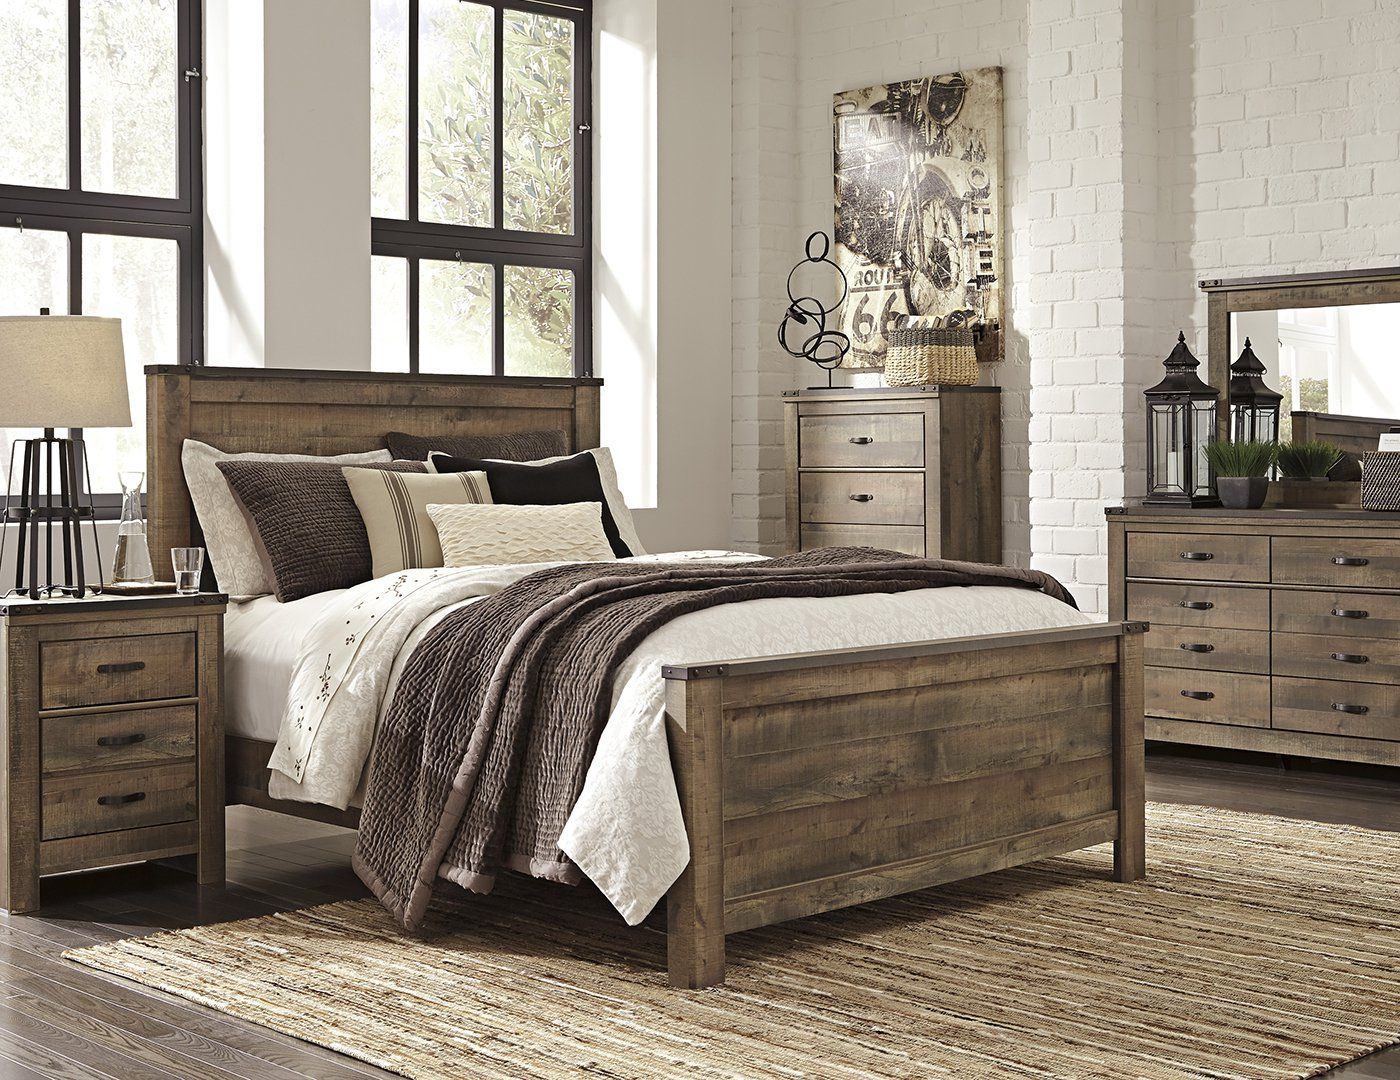 Elegant wood modern master bedroom set feat wood grain cincinnati ohio - Best 20 King Bedroom Sets Ideas On Pinterest King Size Bedroom Sets Farmhouse Bed And King Size Frame